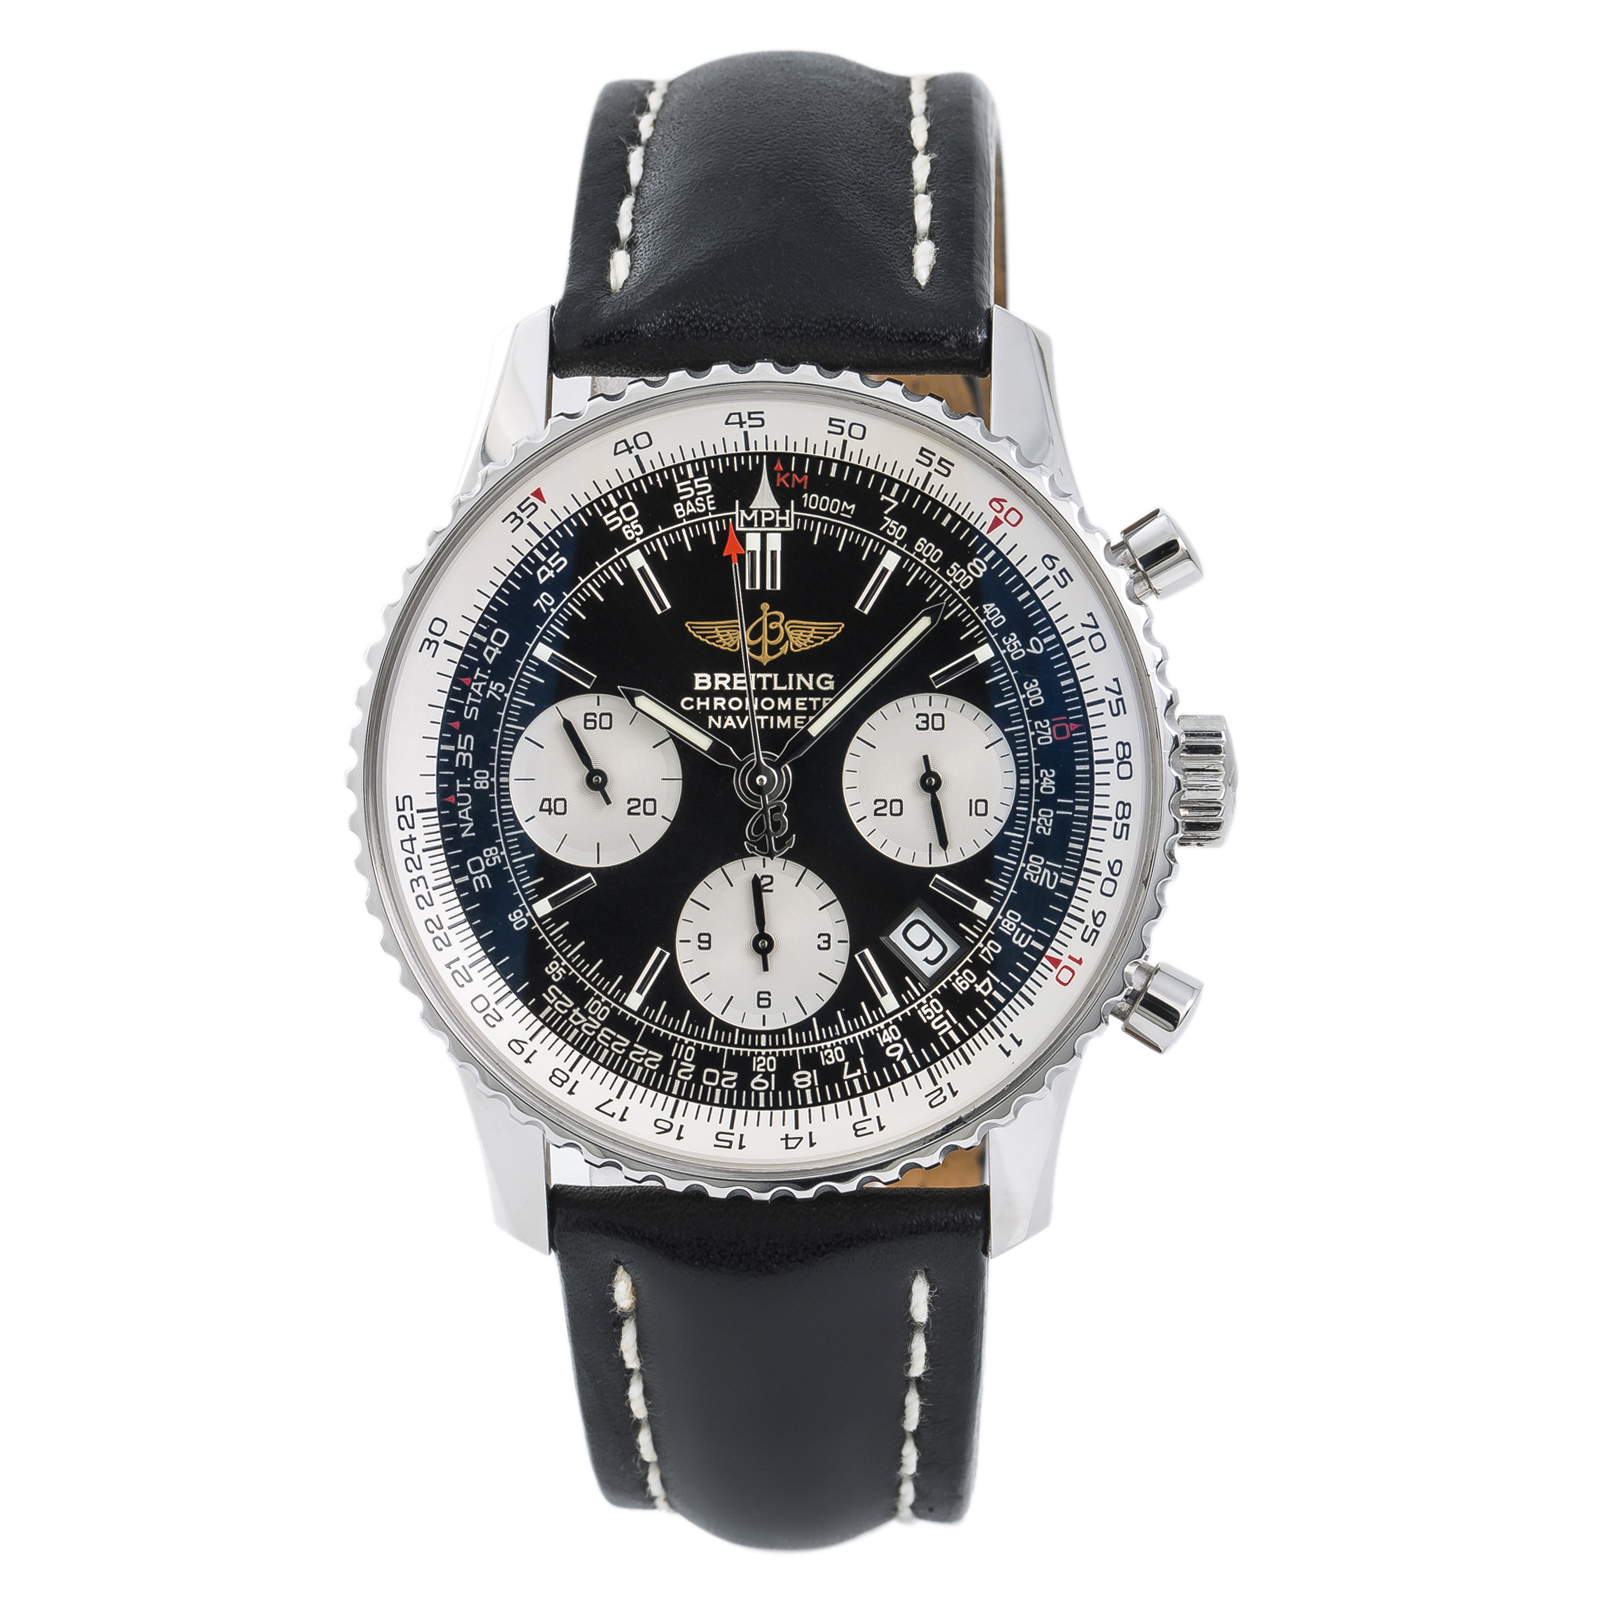 0f5edb12e5c4 Details about Breitling Navitimer A23322 Mens Automatic Watch Chronograph  Black Dial 42mm